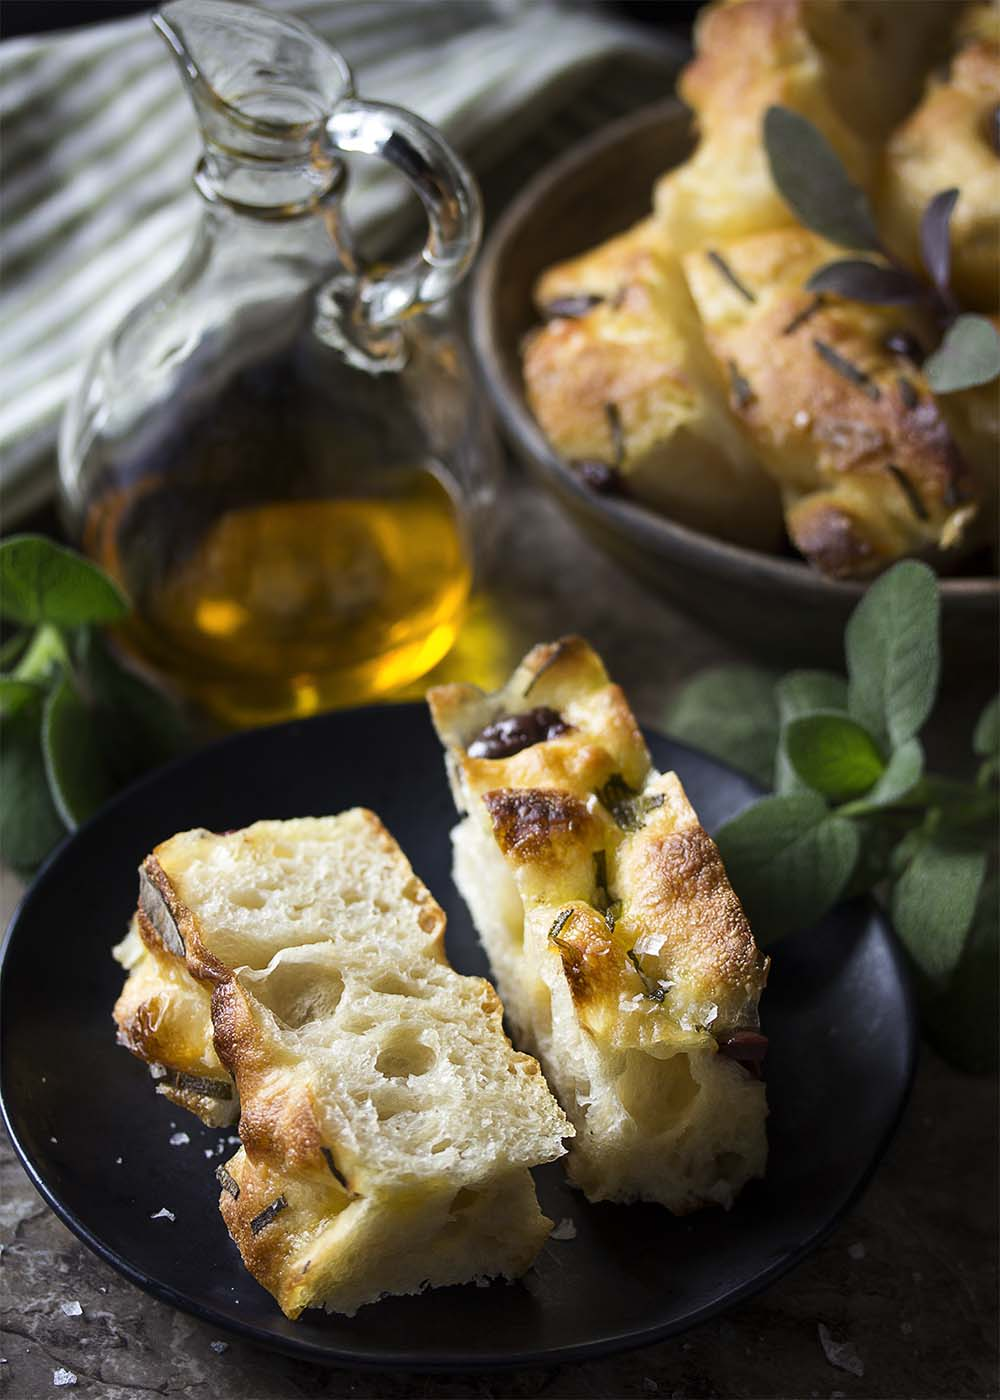 Two slices of soft and chewy olive focaccia on a plate with more slices in the background and olive oil for dipping in a cruet.